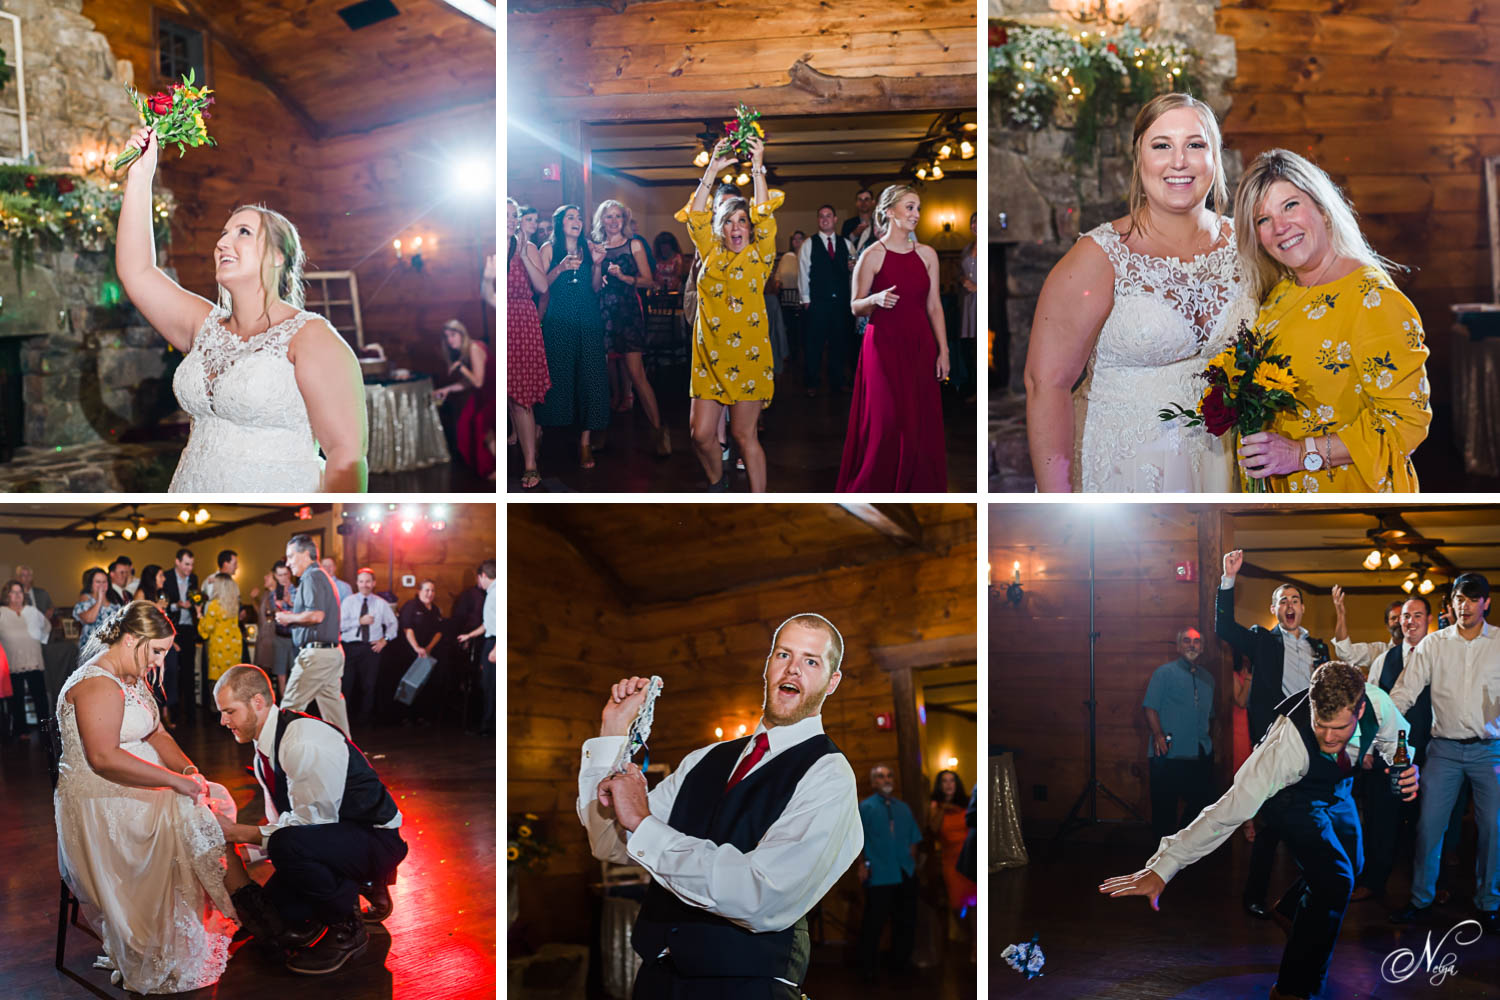 multiple photos of bouquet toss and garter toss at wedding recption at Indigo Falls events